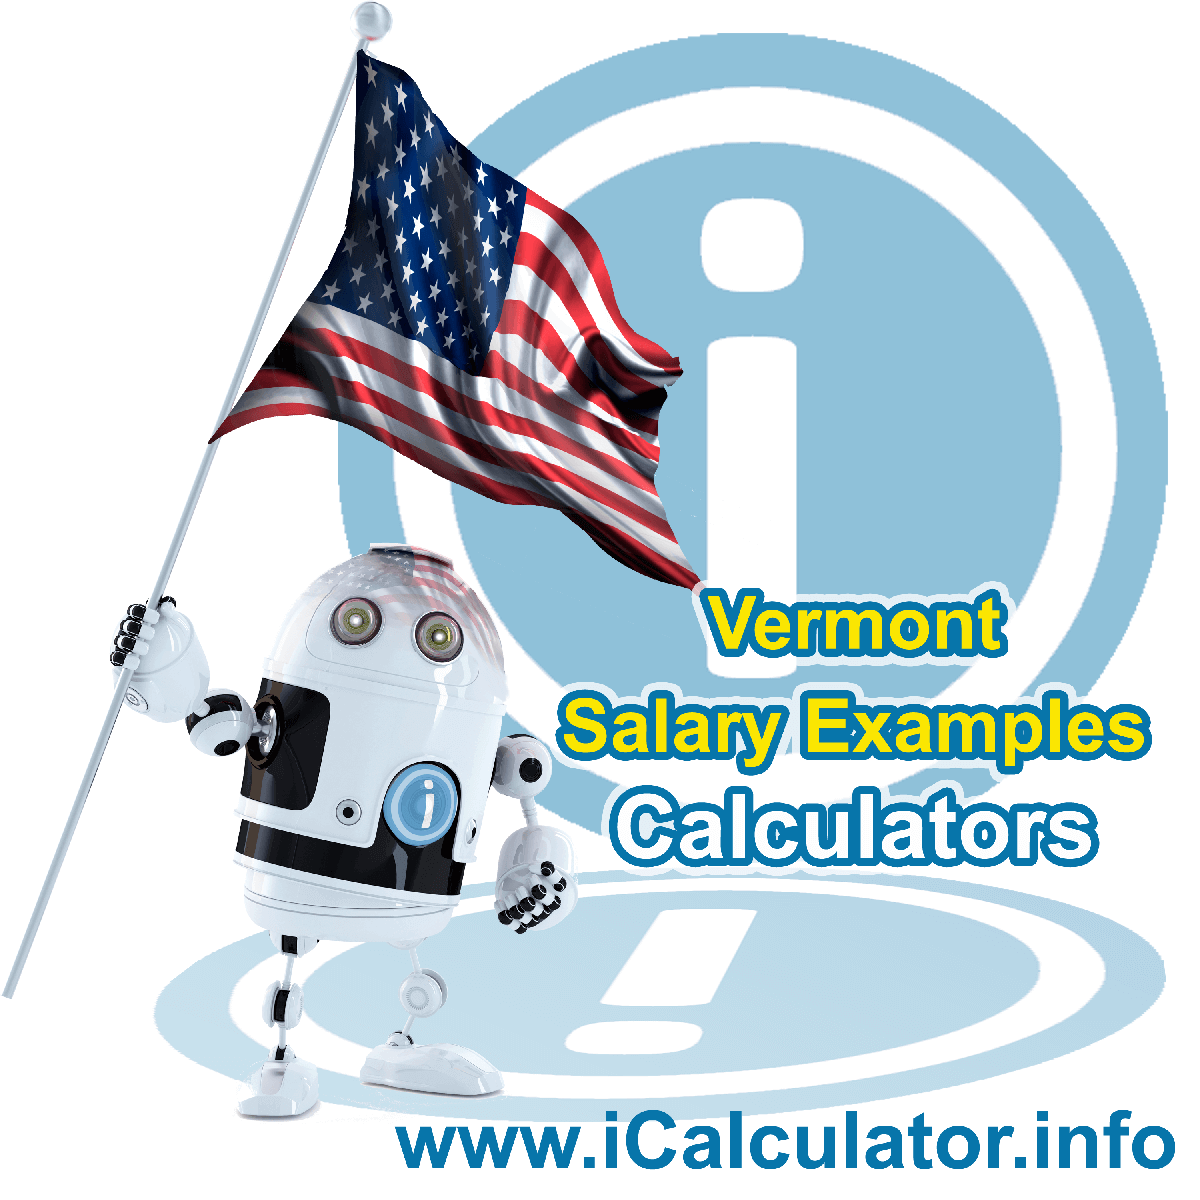 Vermont Salary Example for $260.00 in 2020 | iCalculator | $260.00 salary example for employee and employer paying Vermont State tincome taxes. Detailed salary after tax calculation including Vermont State Tax, Federal State Tax, Medicare Deductions, Social Security, Capital Gains and other income tax and salary deductions complete with supporting Vermont state tax tables